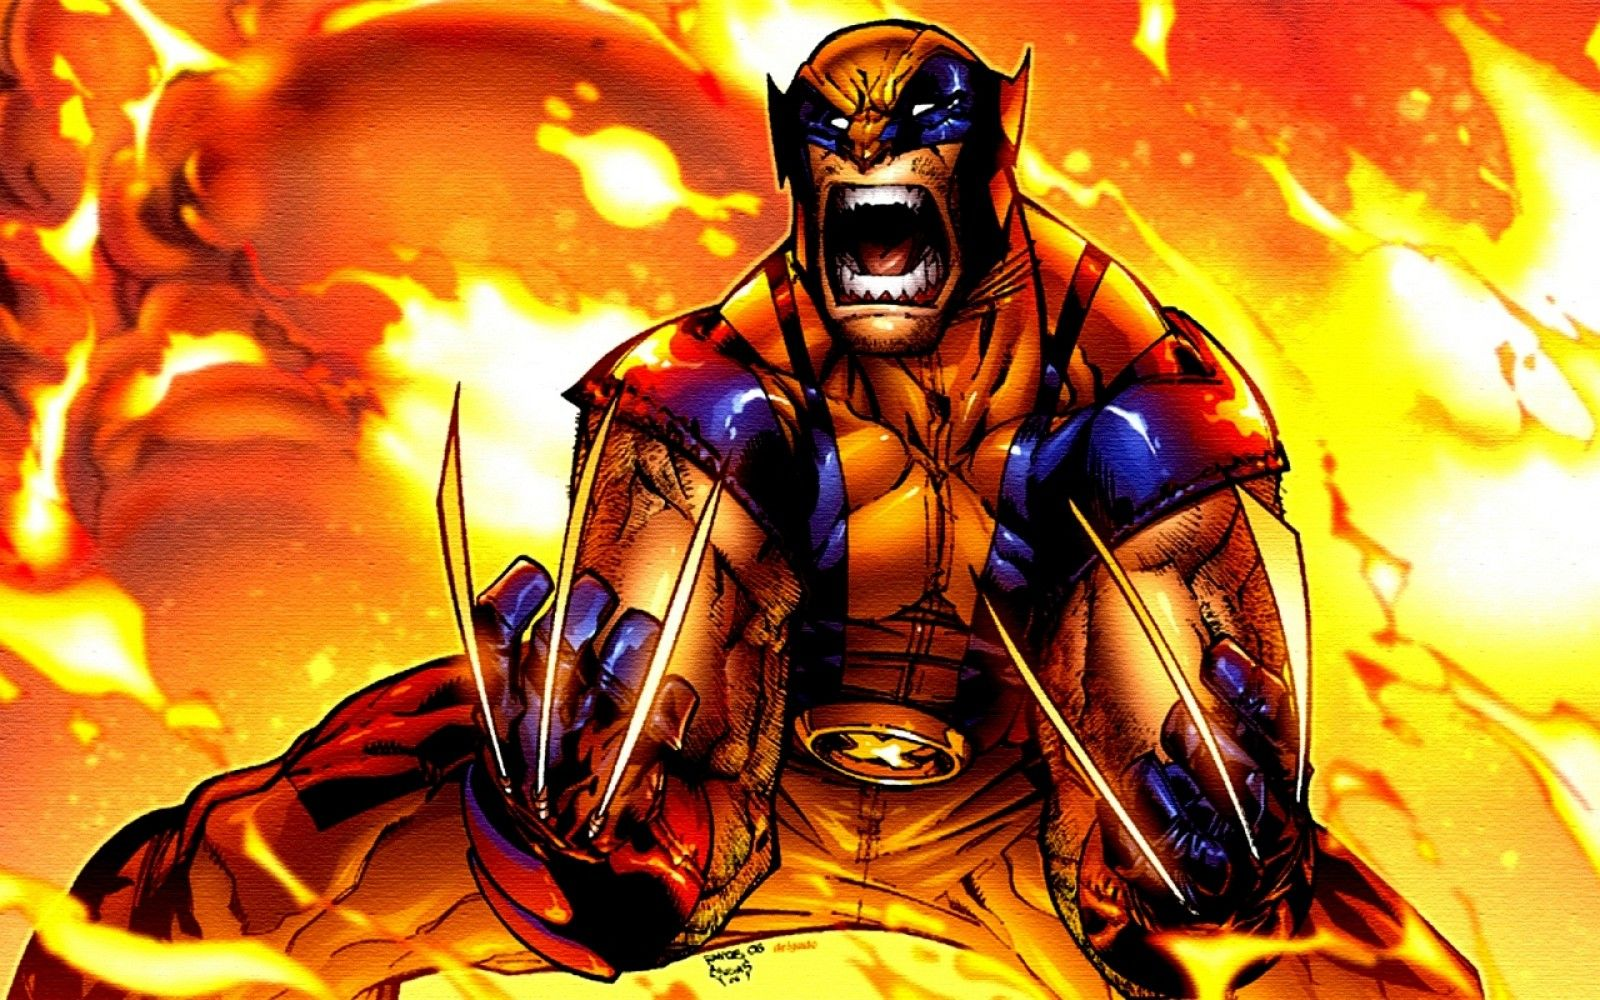 X-men Comic | Wolverine X Men comics HD wallpaper